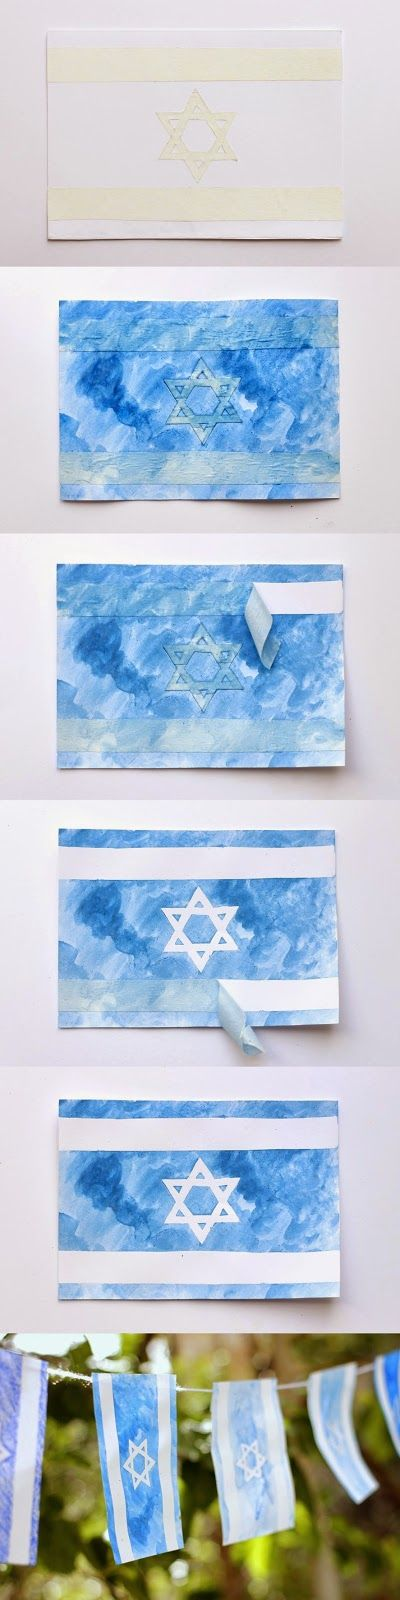 flag craft for kids